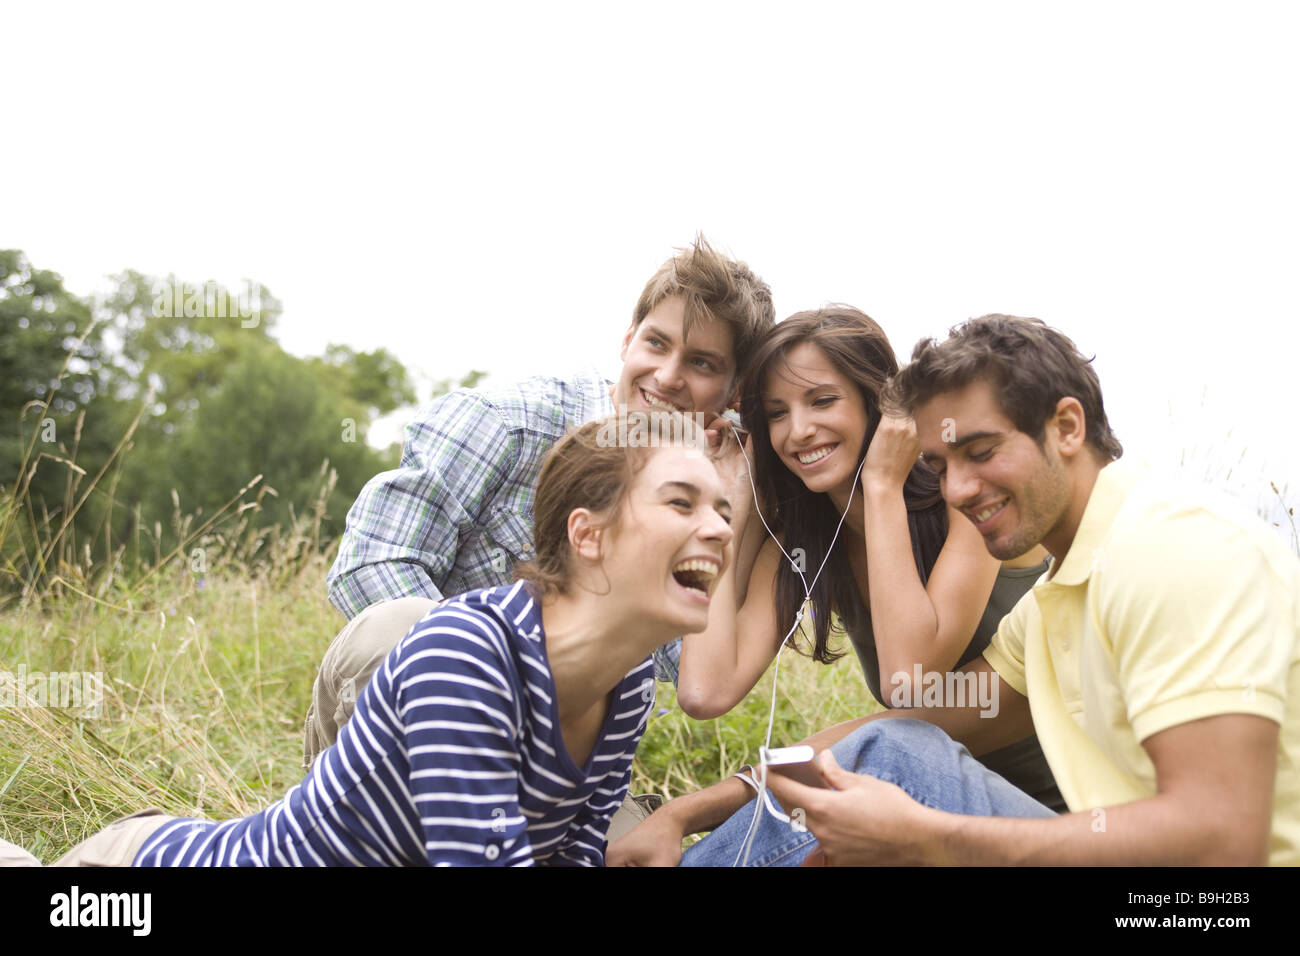 Group Leisure Time Activity Mp3 Music Hears Nature Outside 20 30 Stock Photo Royalty Free Image